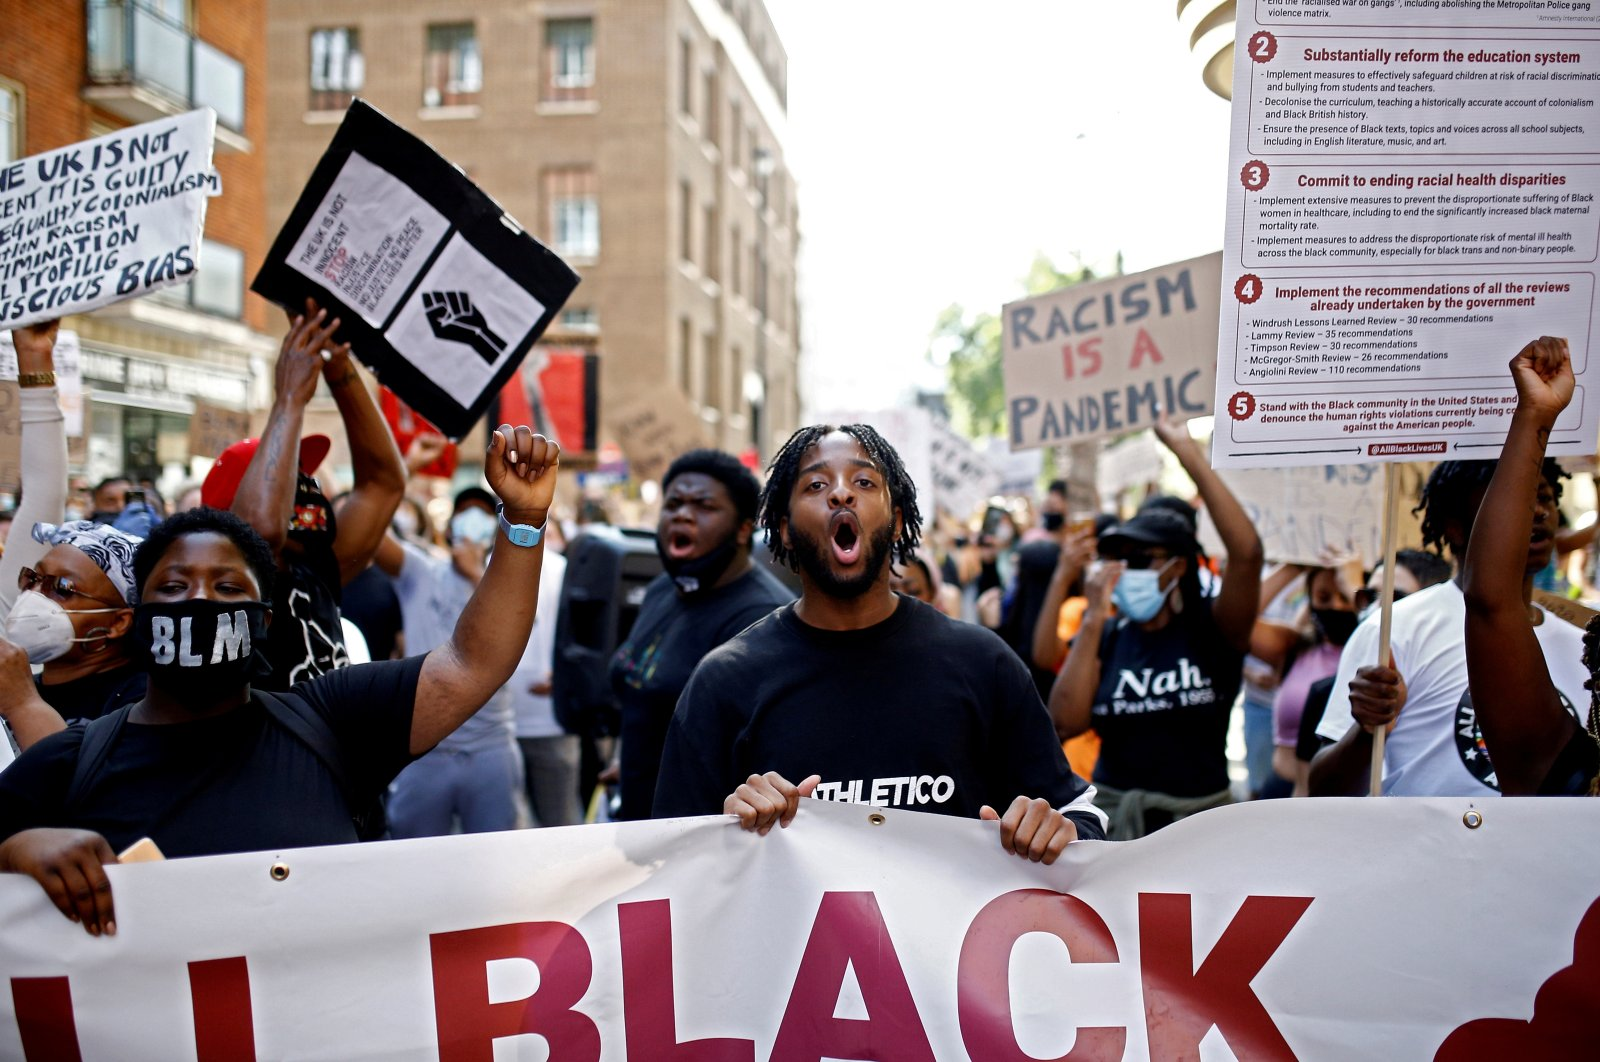 Demonstrators take part in a Black Lives Matter protest in London, Britain, July 12, 2020. (Reuters Photo)